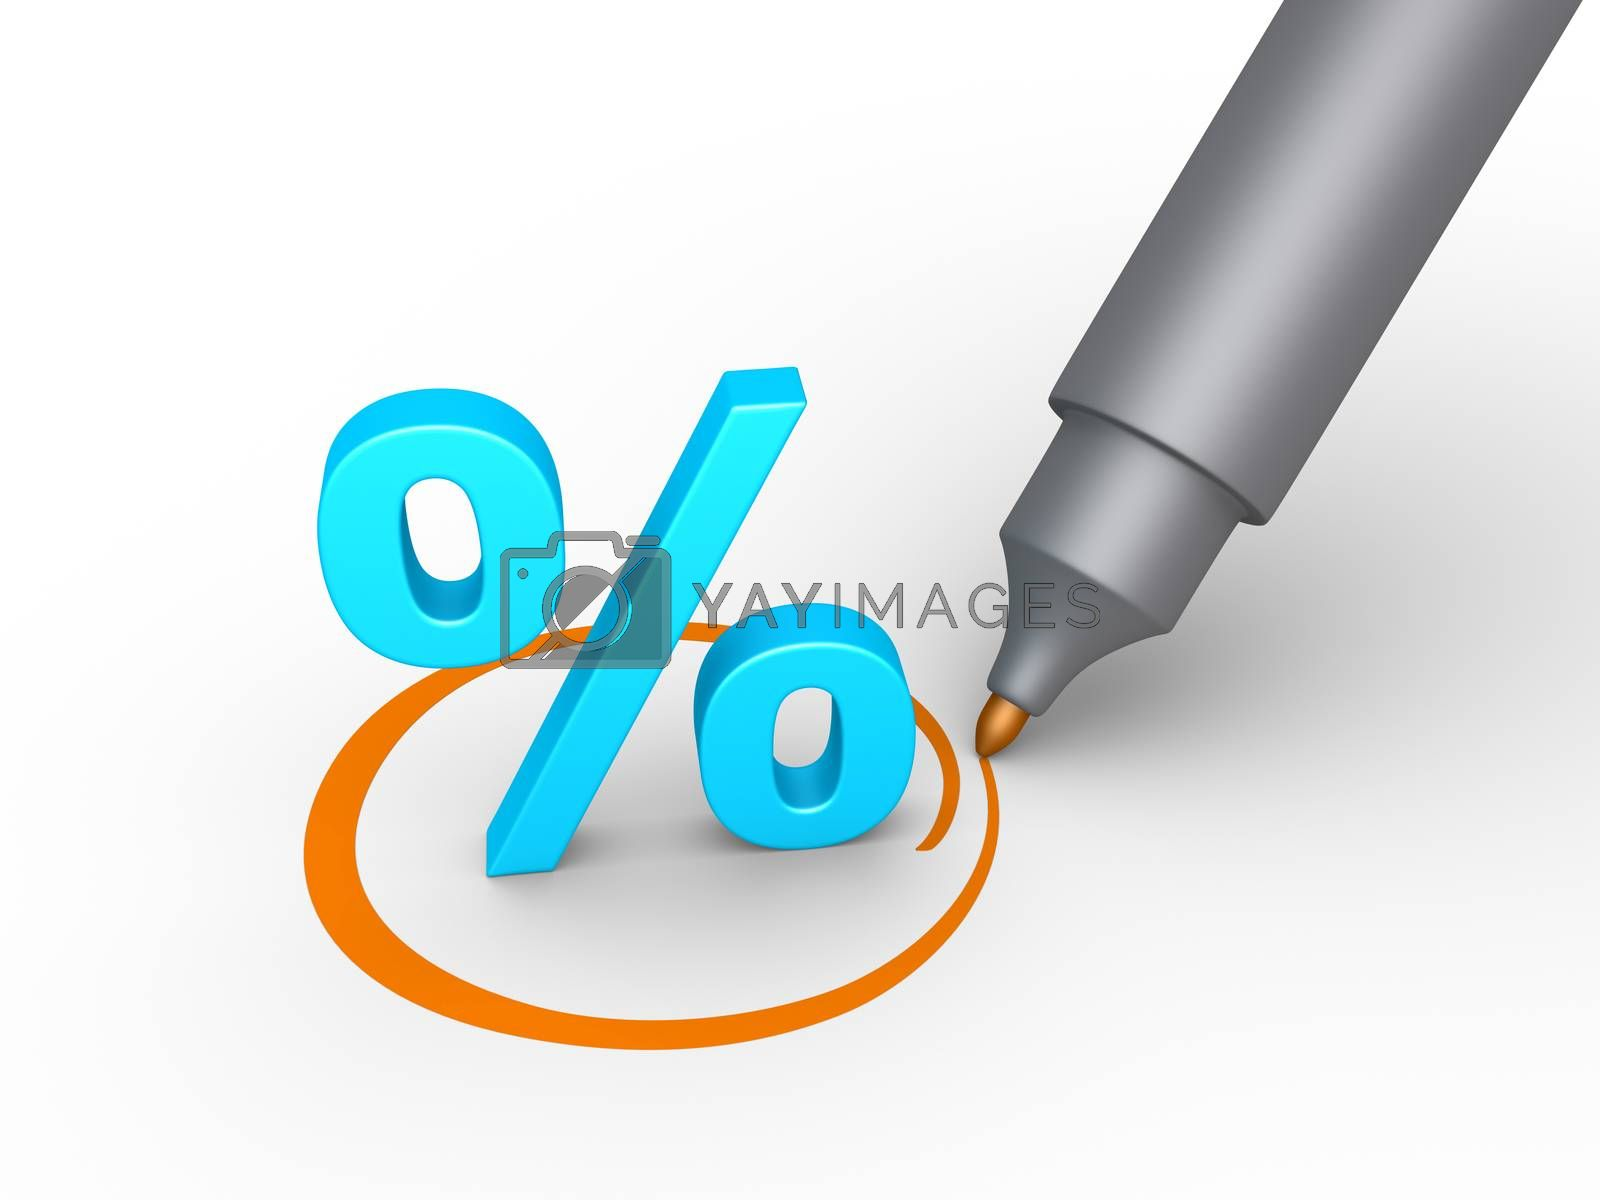 Percent symbol is selected by 6kor3dos